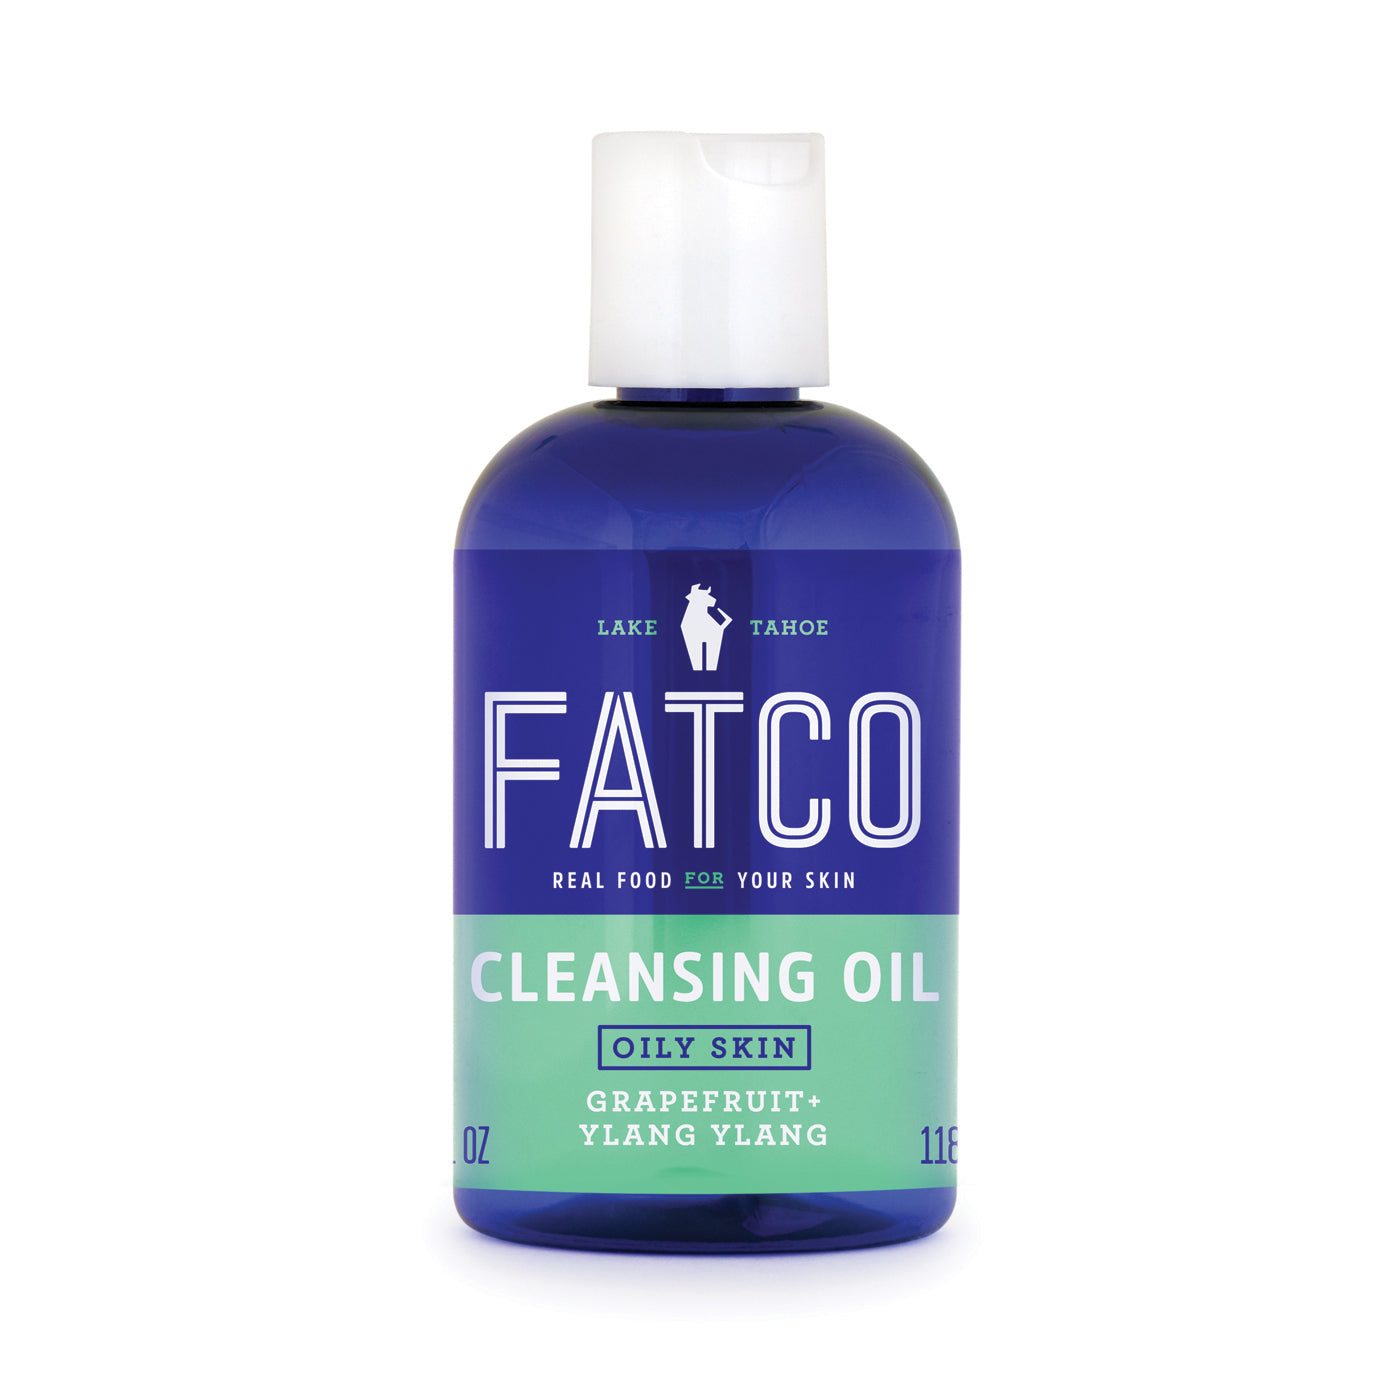 FATCO Cleansing Oil for Oily Skin 4 oz bottle front view